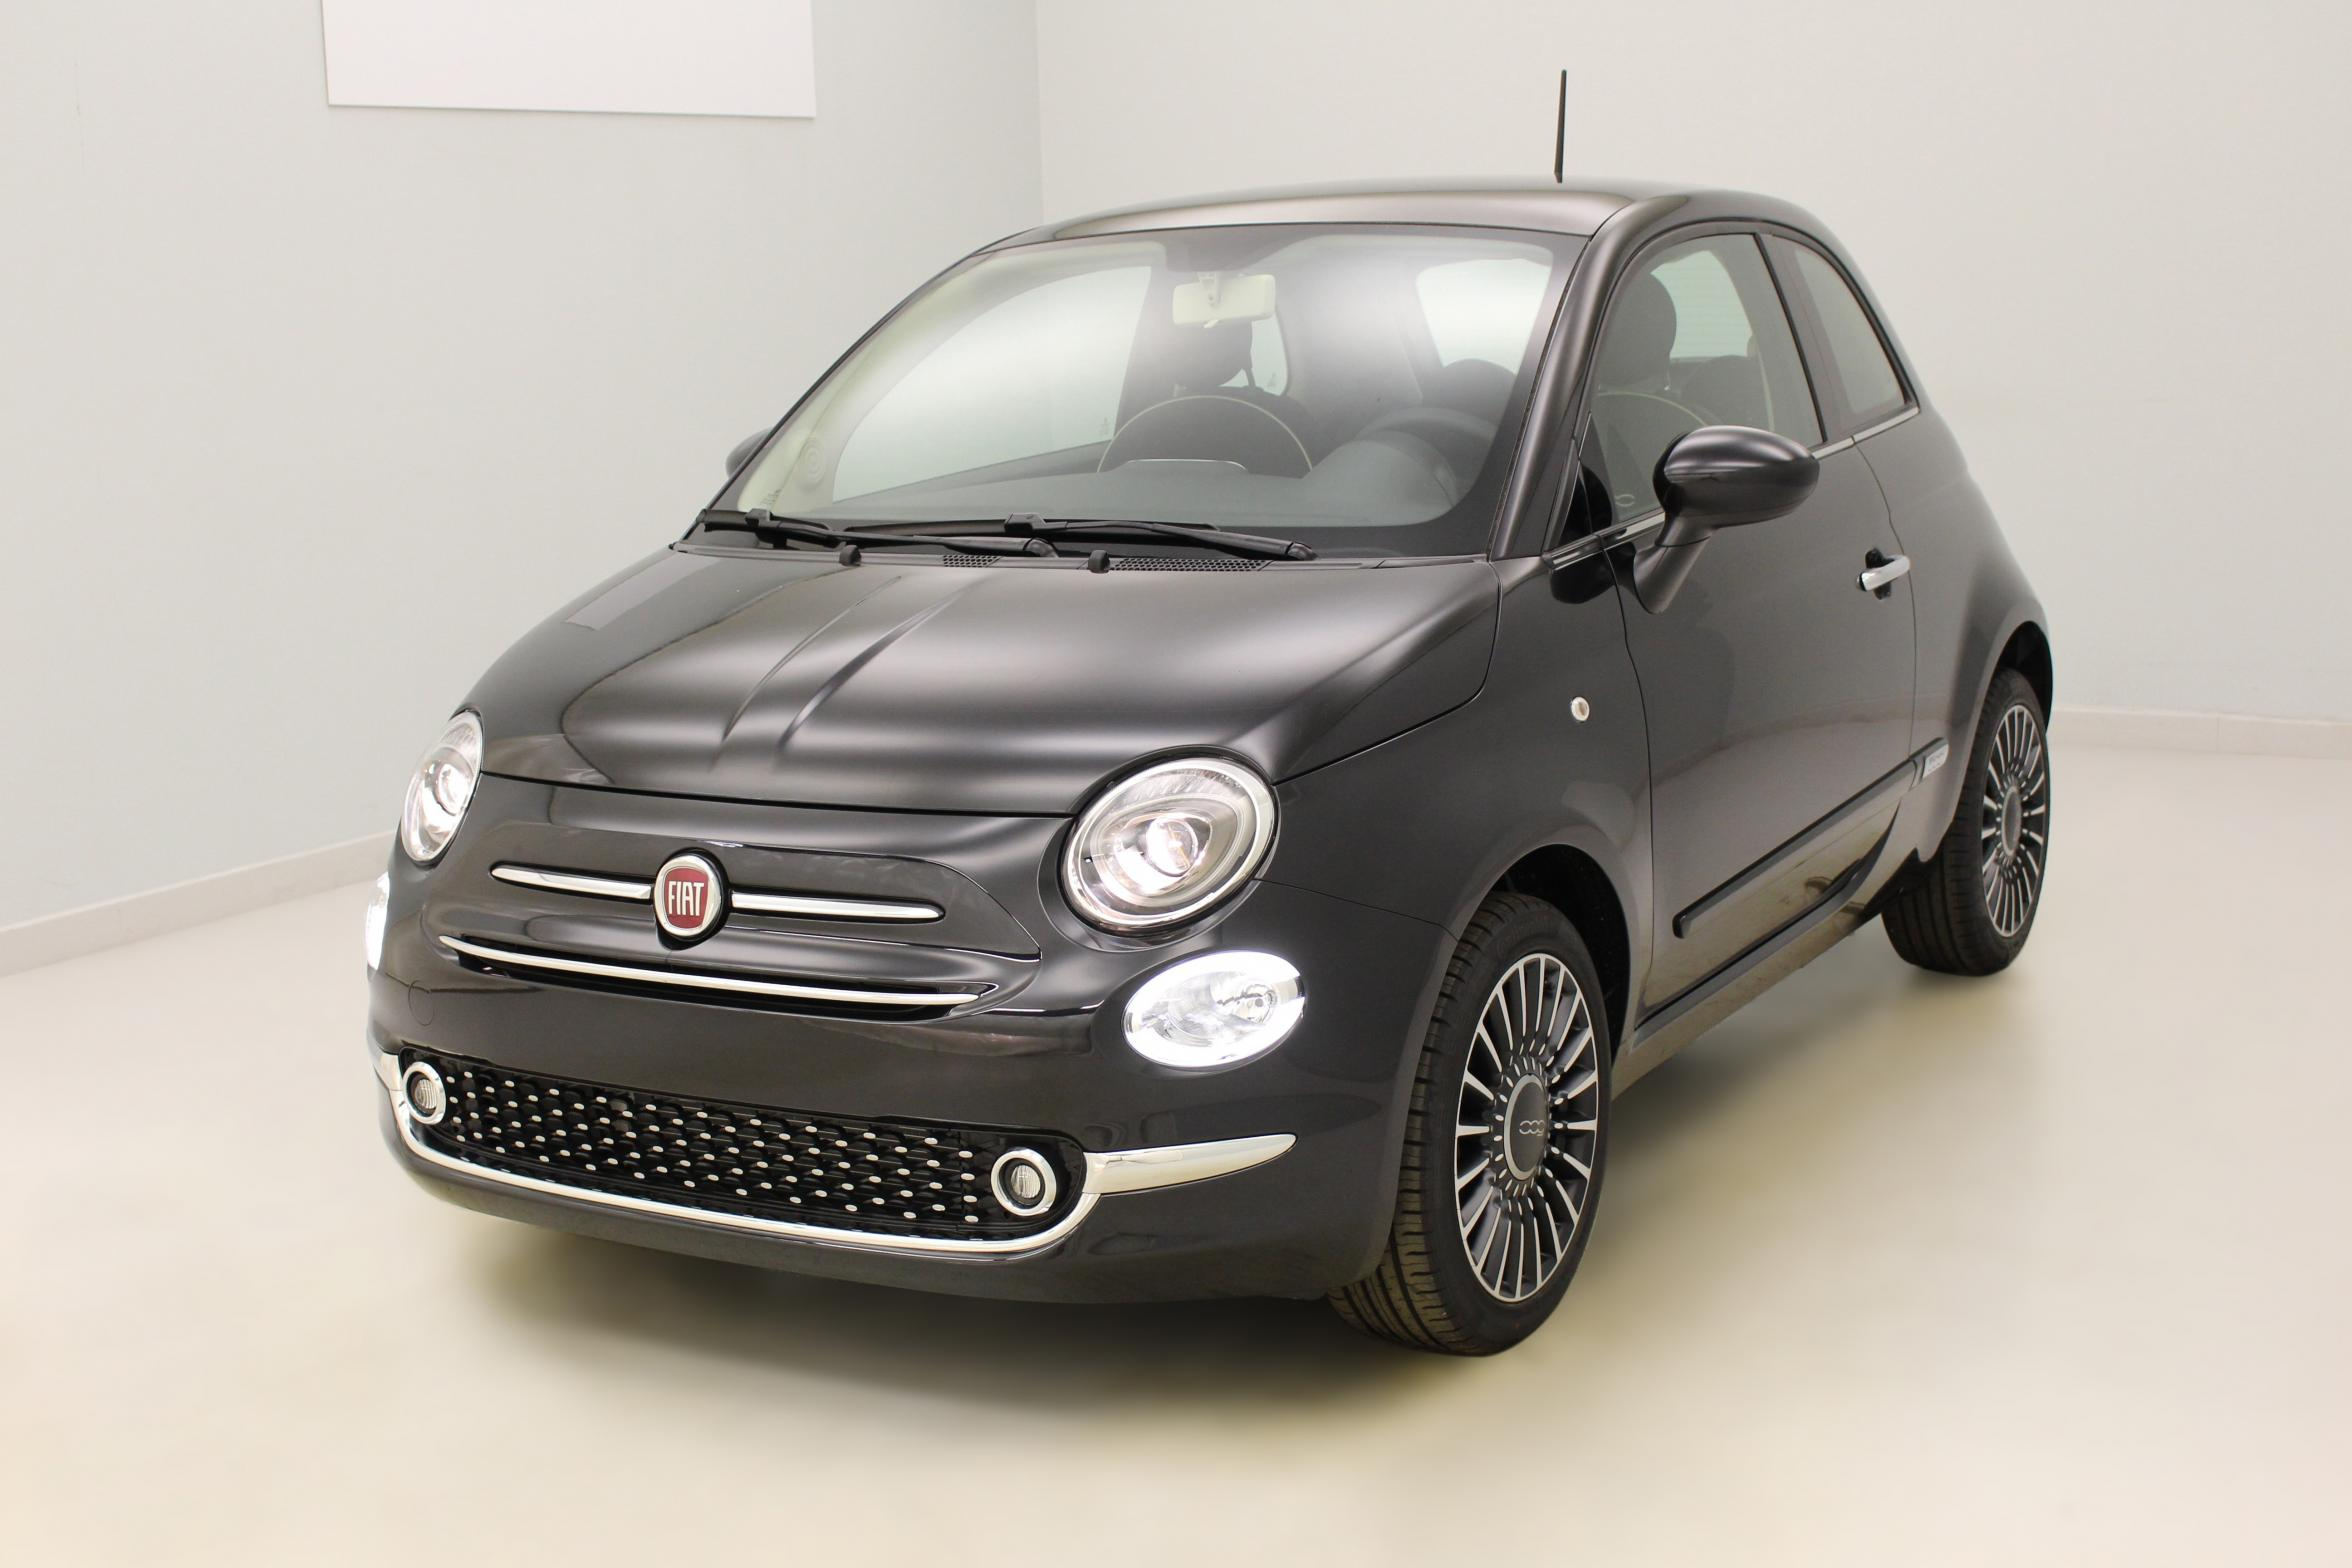 fiat 500 1 2 69 ch popstar dualogic crossover black jantes alliage 16 39 new club avec options. Black Bedroom Furniture Sets. Home Design Ideas